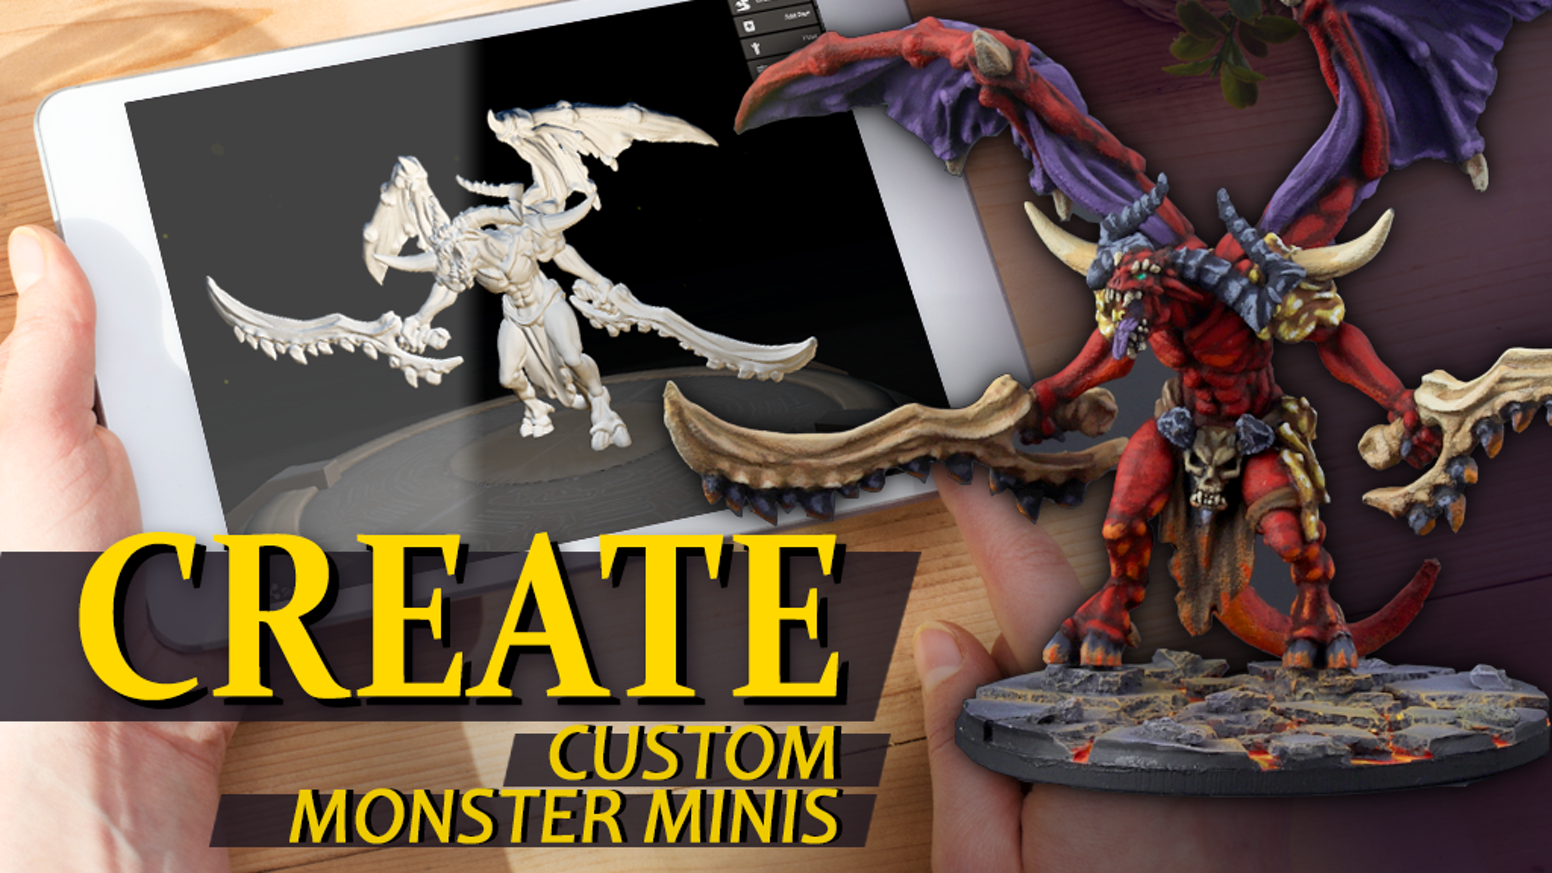 Create custom monster miniatures for D&D and tabletop RPGs. Shipped or 3D printed!